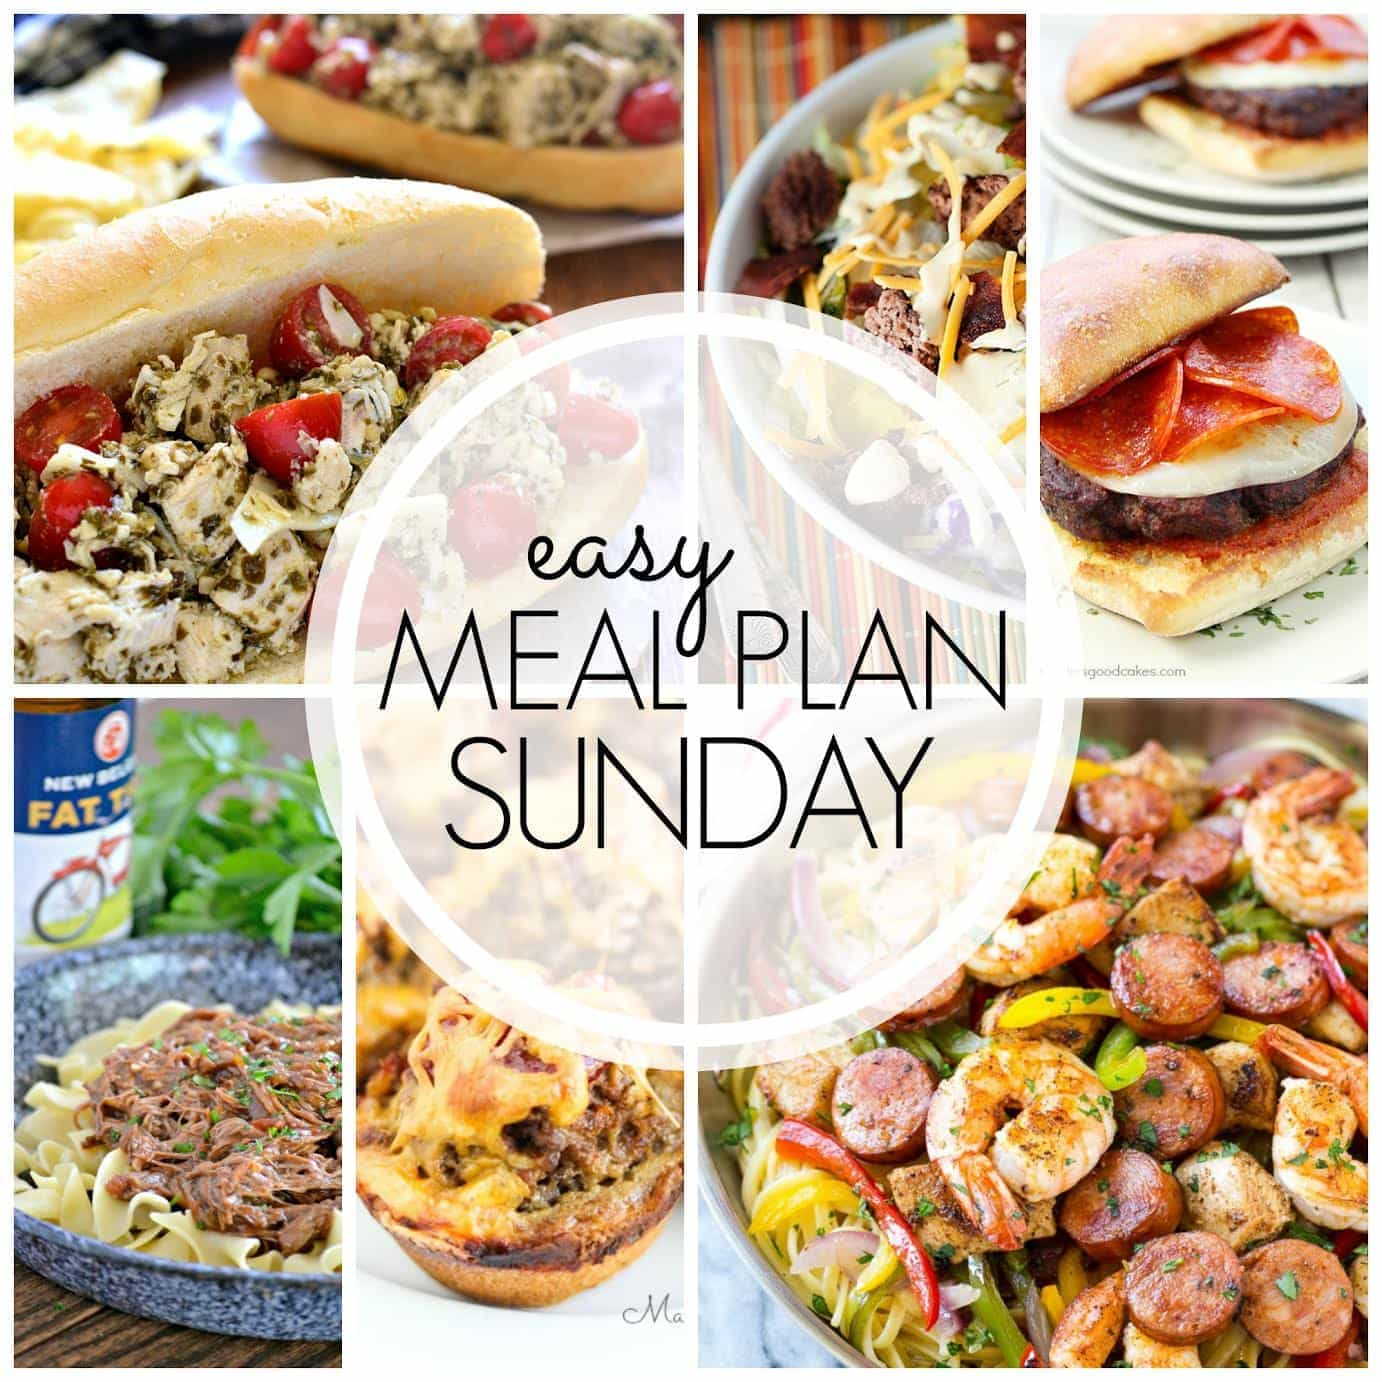 The BEST Easy Meal Plan, guaranteed to make your life easier! 6 dinners, 1 breakfast, and 2 desserts....all pre-tested and family approved! Enjoy!